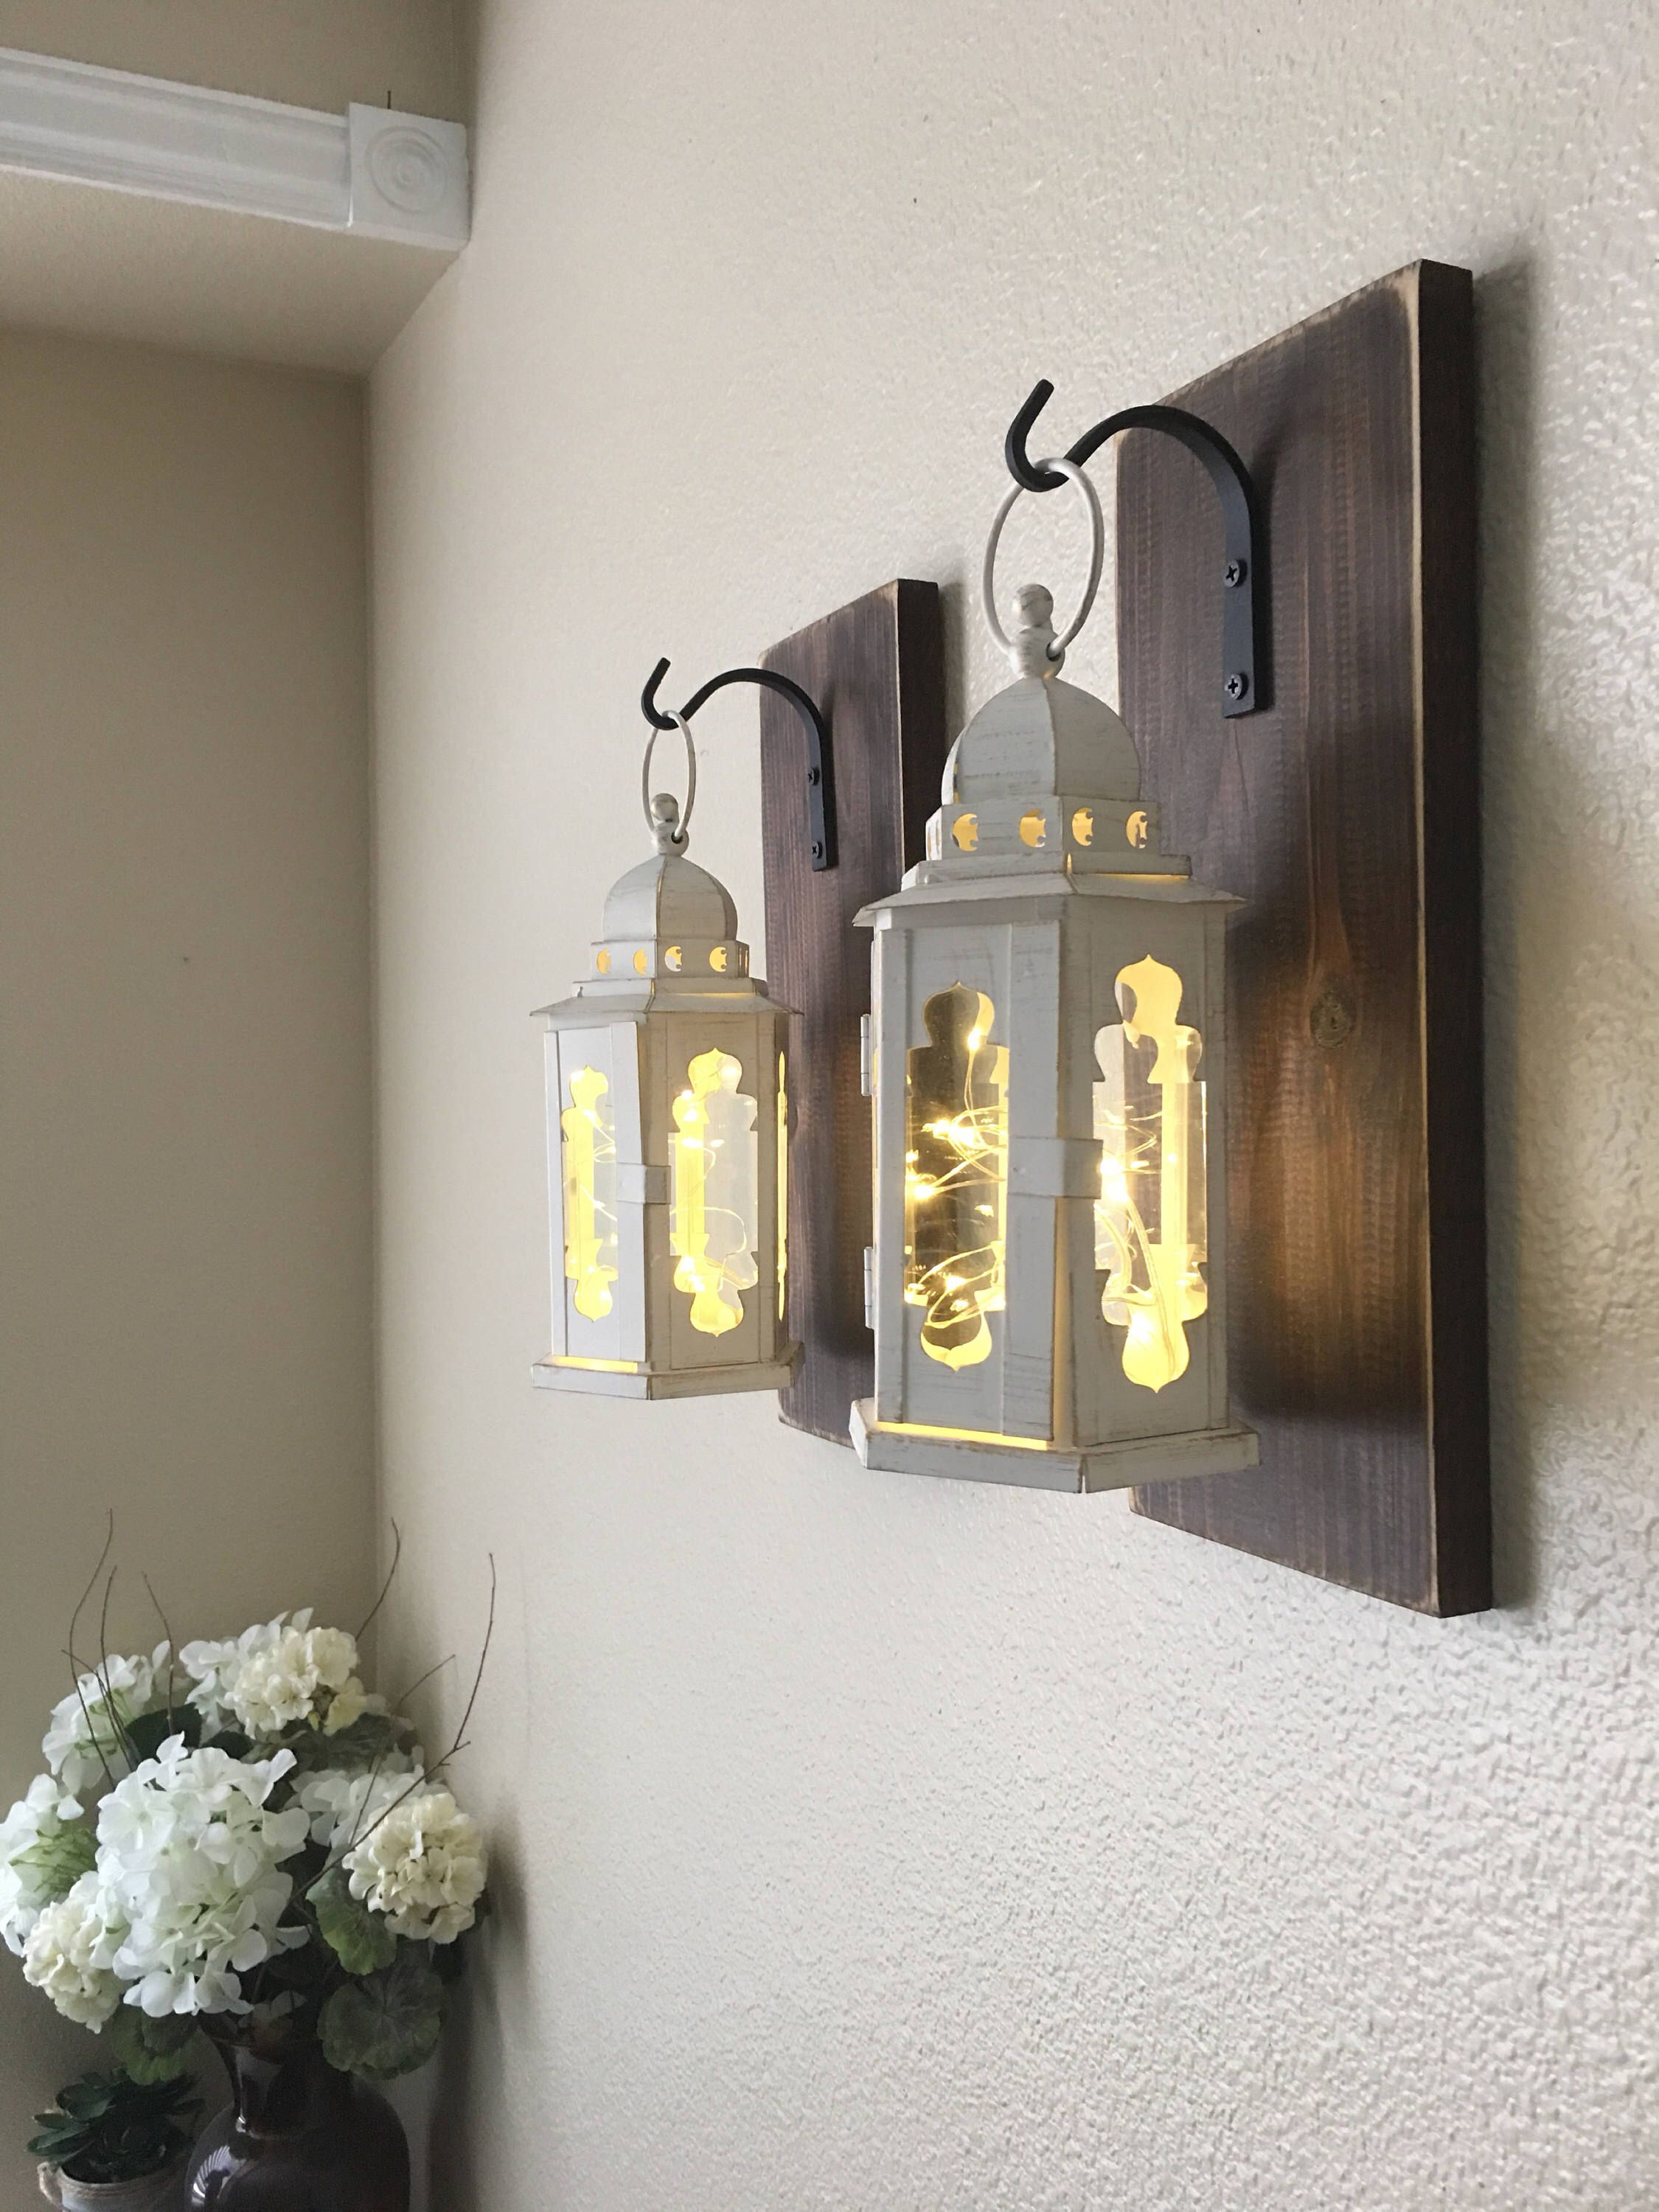 combo shelf decorative sconce pocket mount oven watch microwave hanging tv wall clock sconces